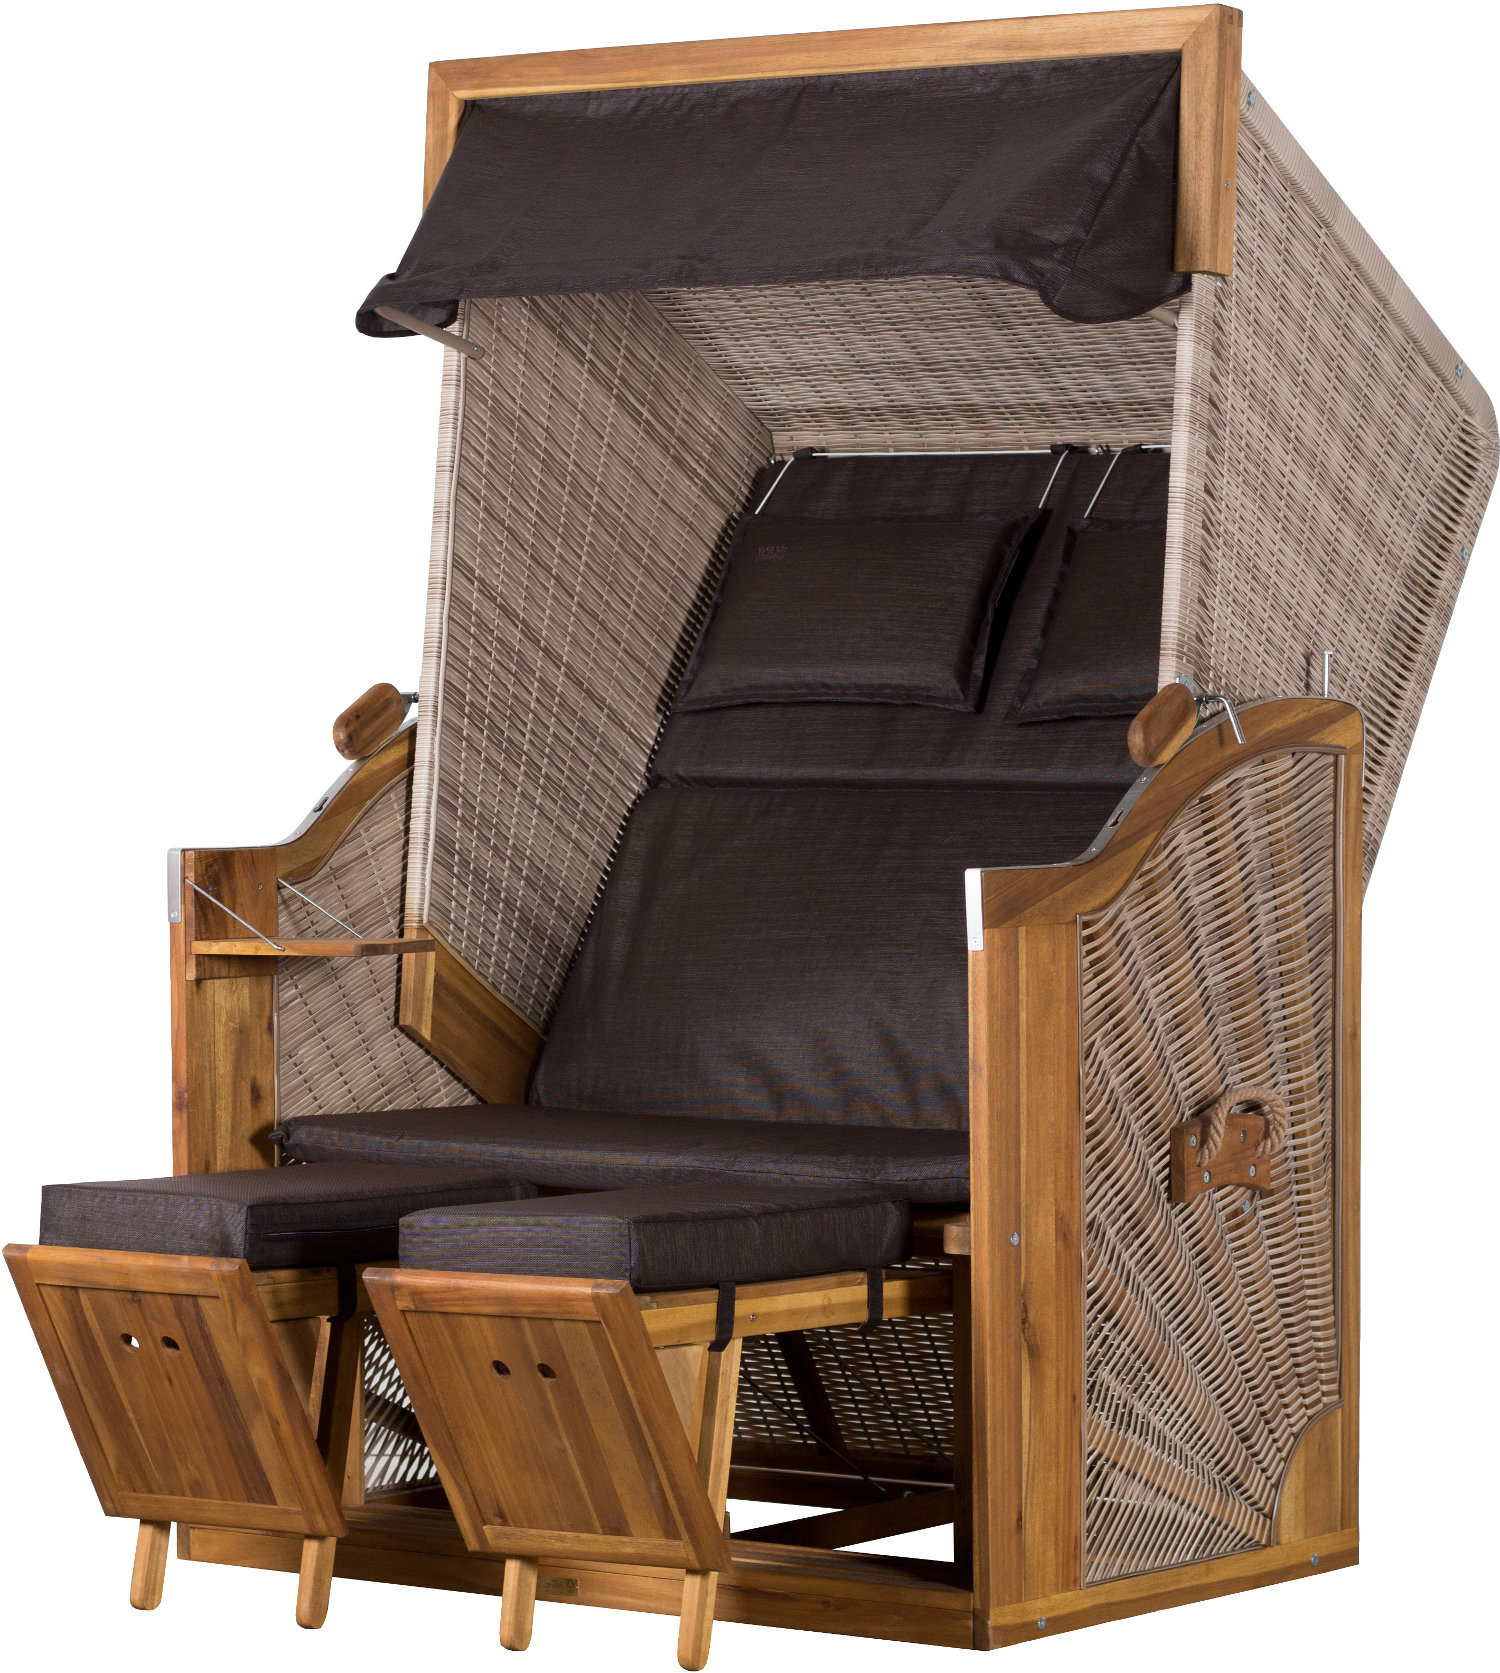 strandkorb trendy greenline 120 rugbyclubeemland. Black Bedroom Furniture Sets. Home Design Ideas